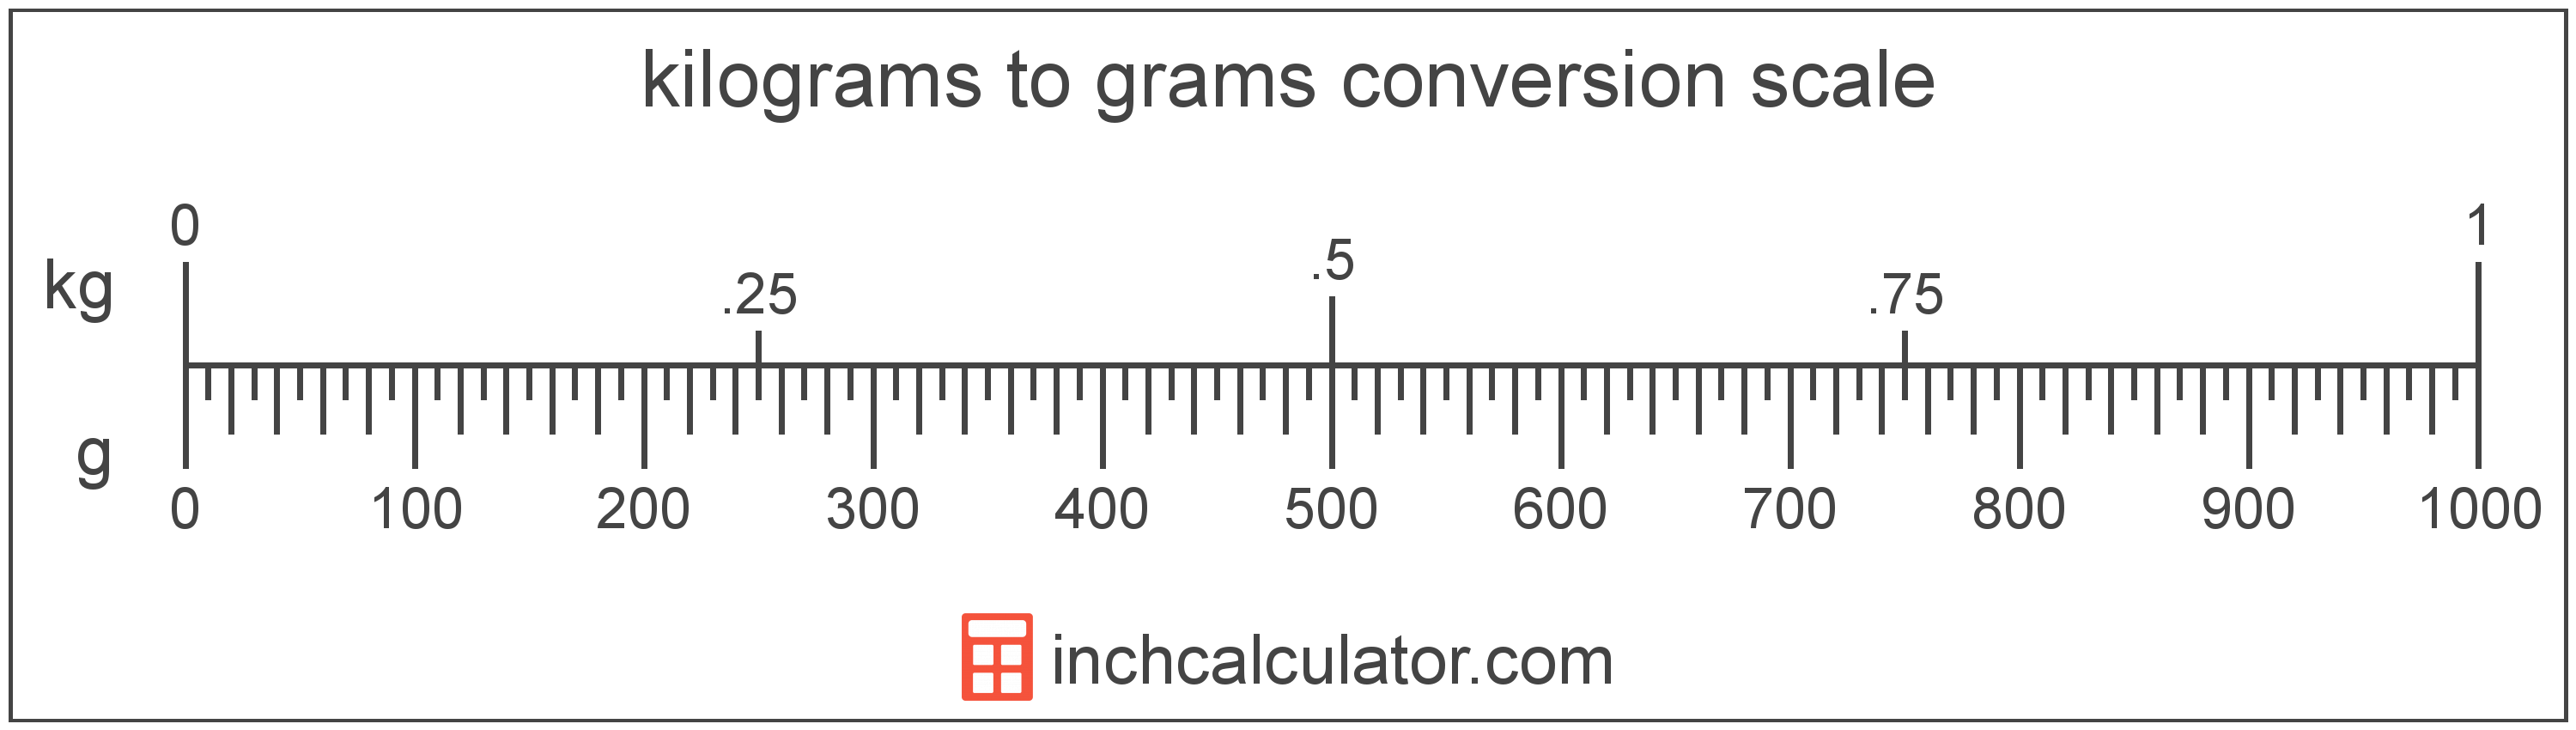 Convert Kilograms to Grams - (kg to g) - Inch Calculator